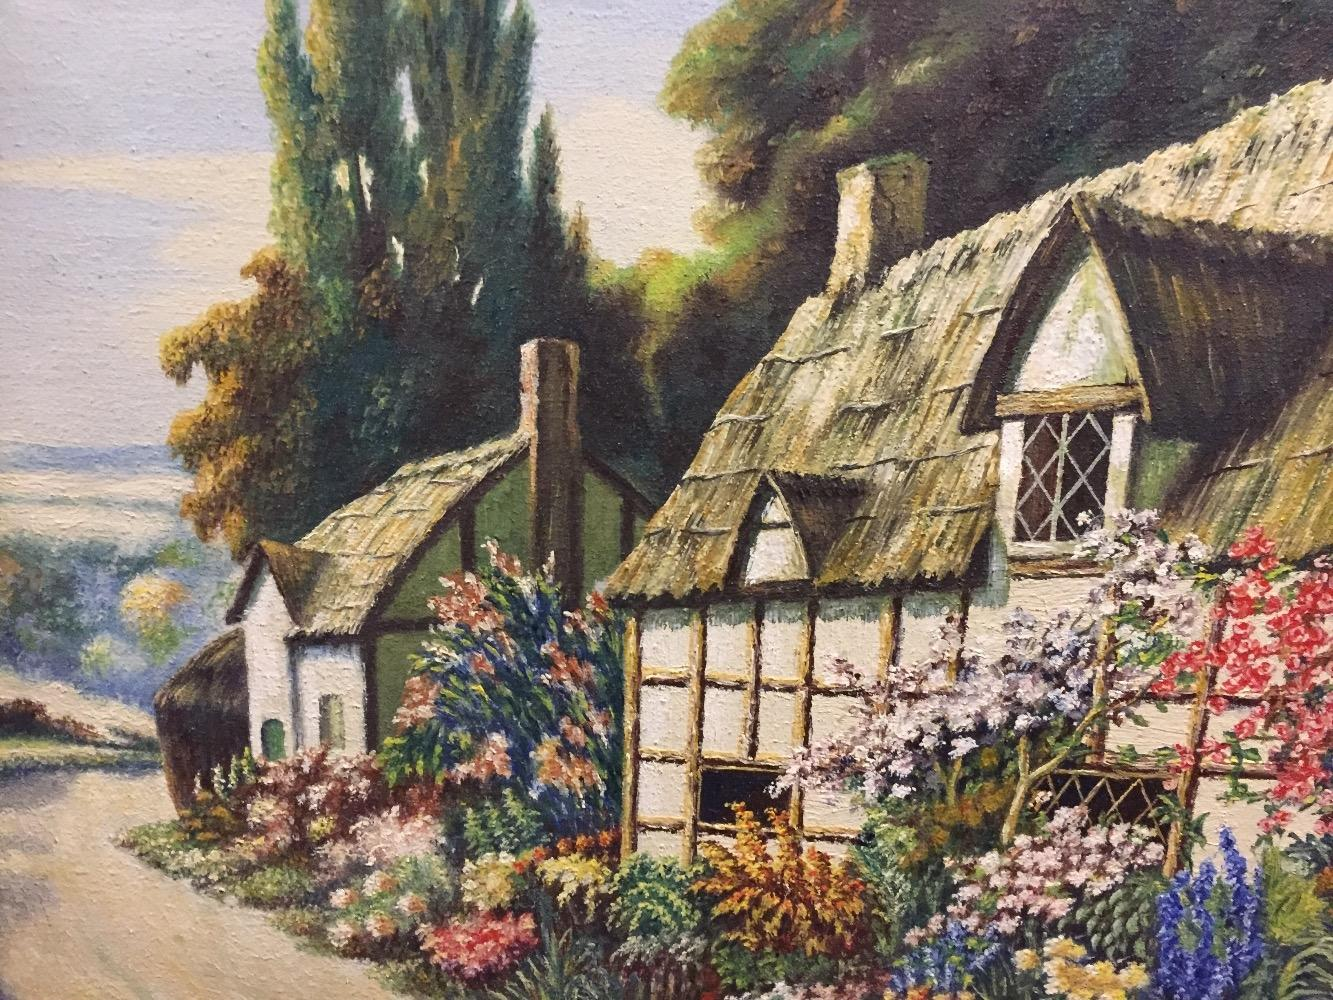 Cottages in England